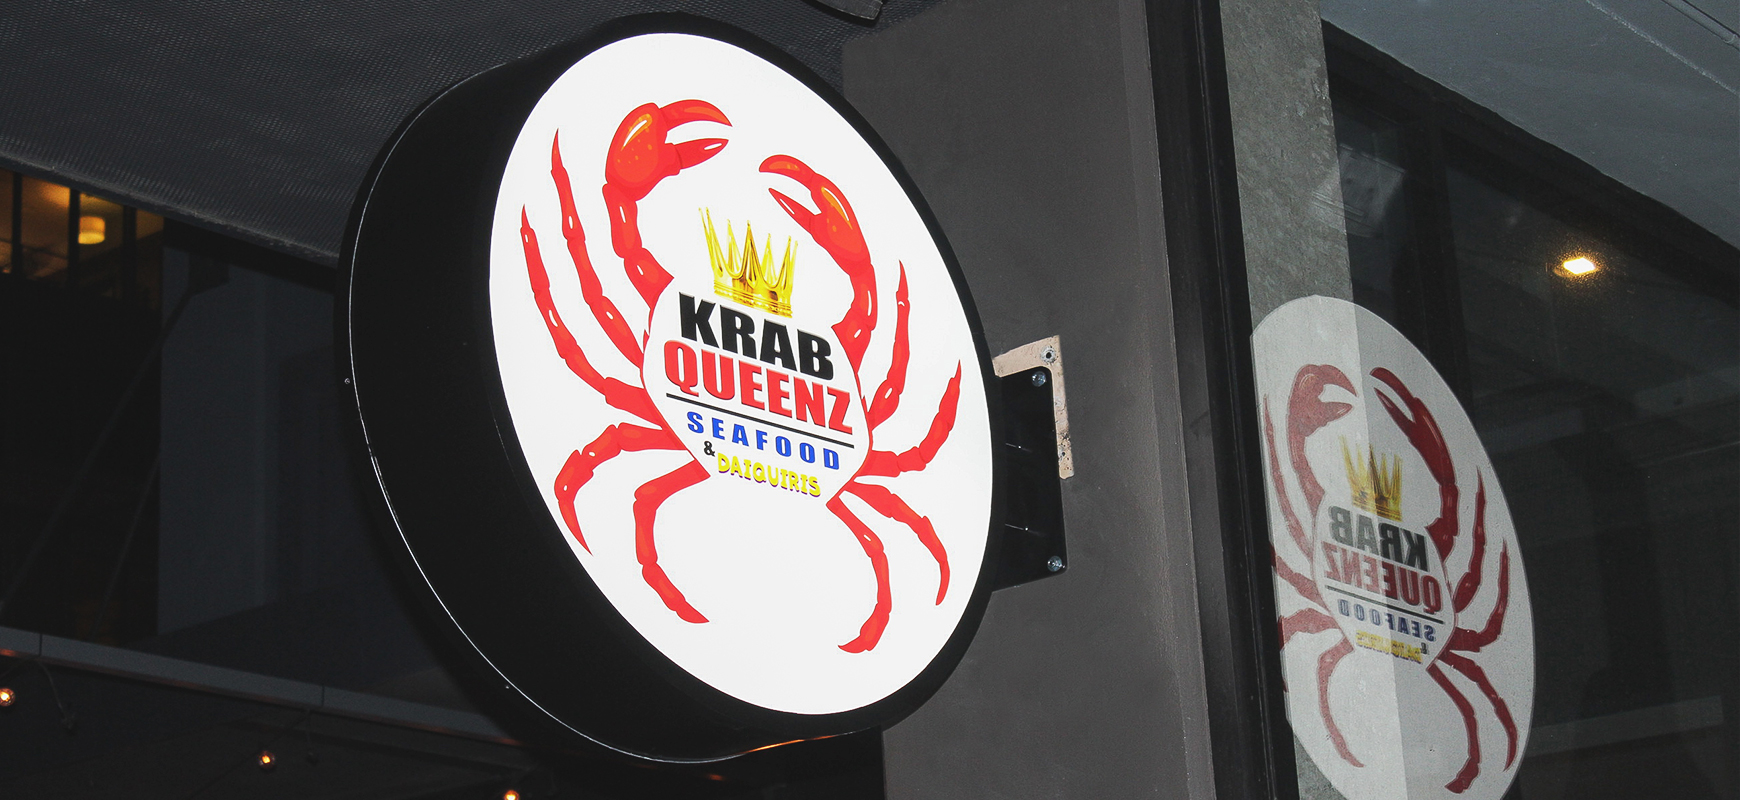 Krab Queenz led light box in a round shape and wall-blade style made of acrylic and aluminum